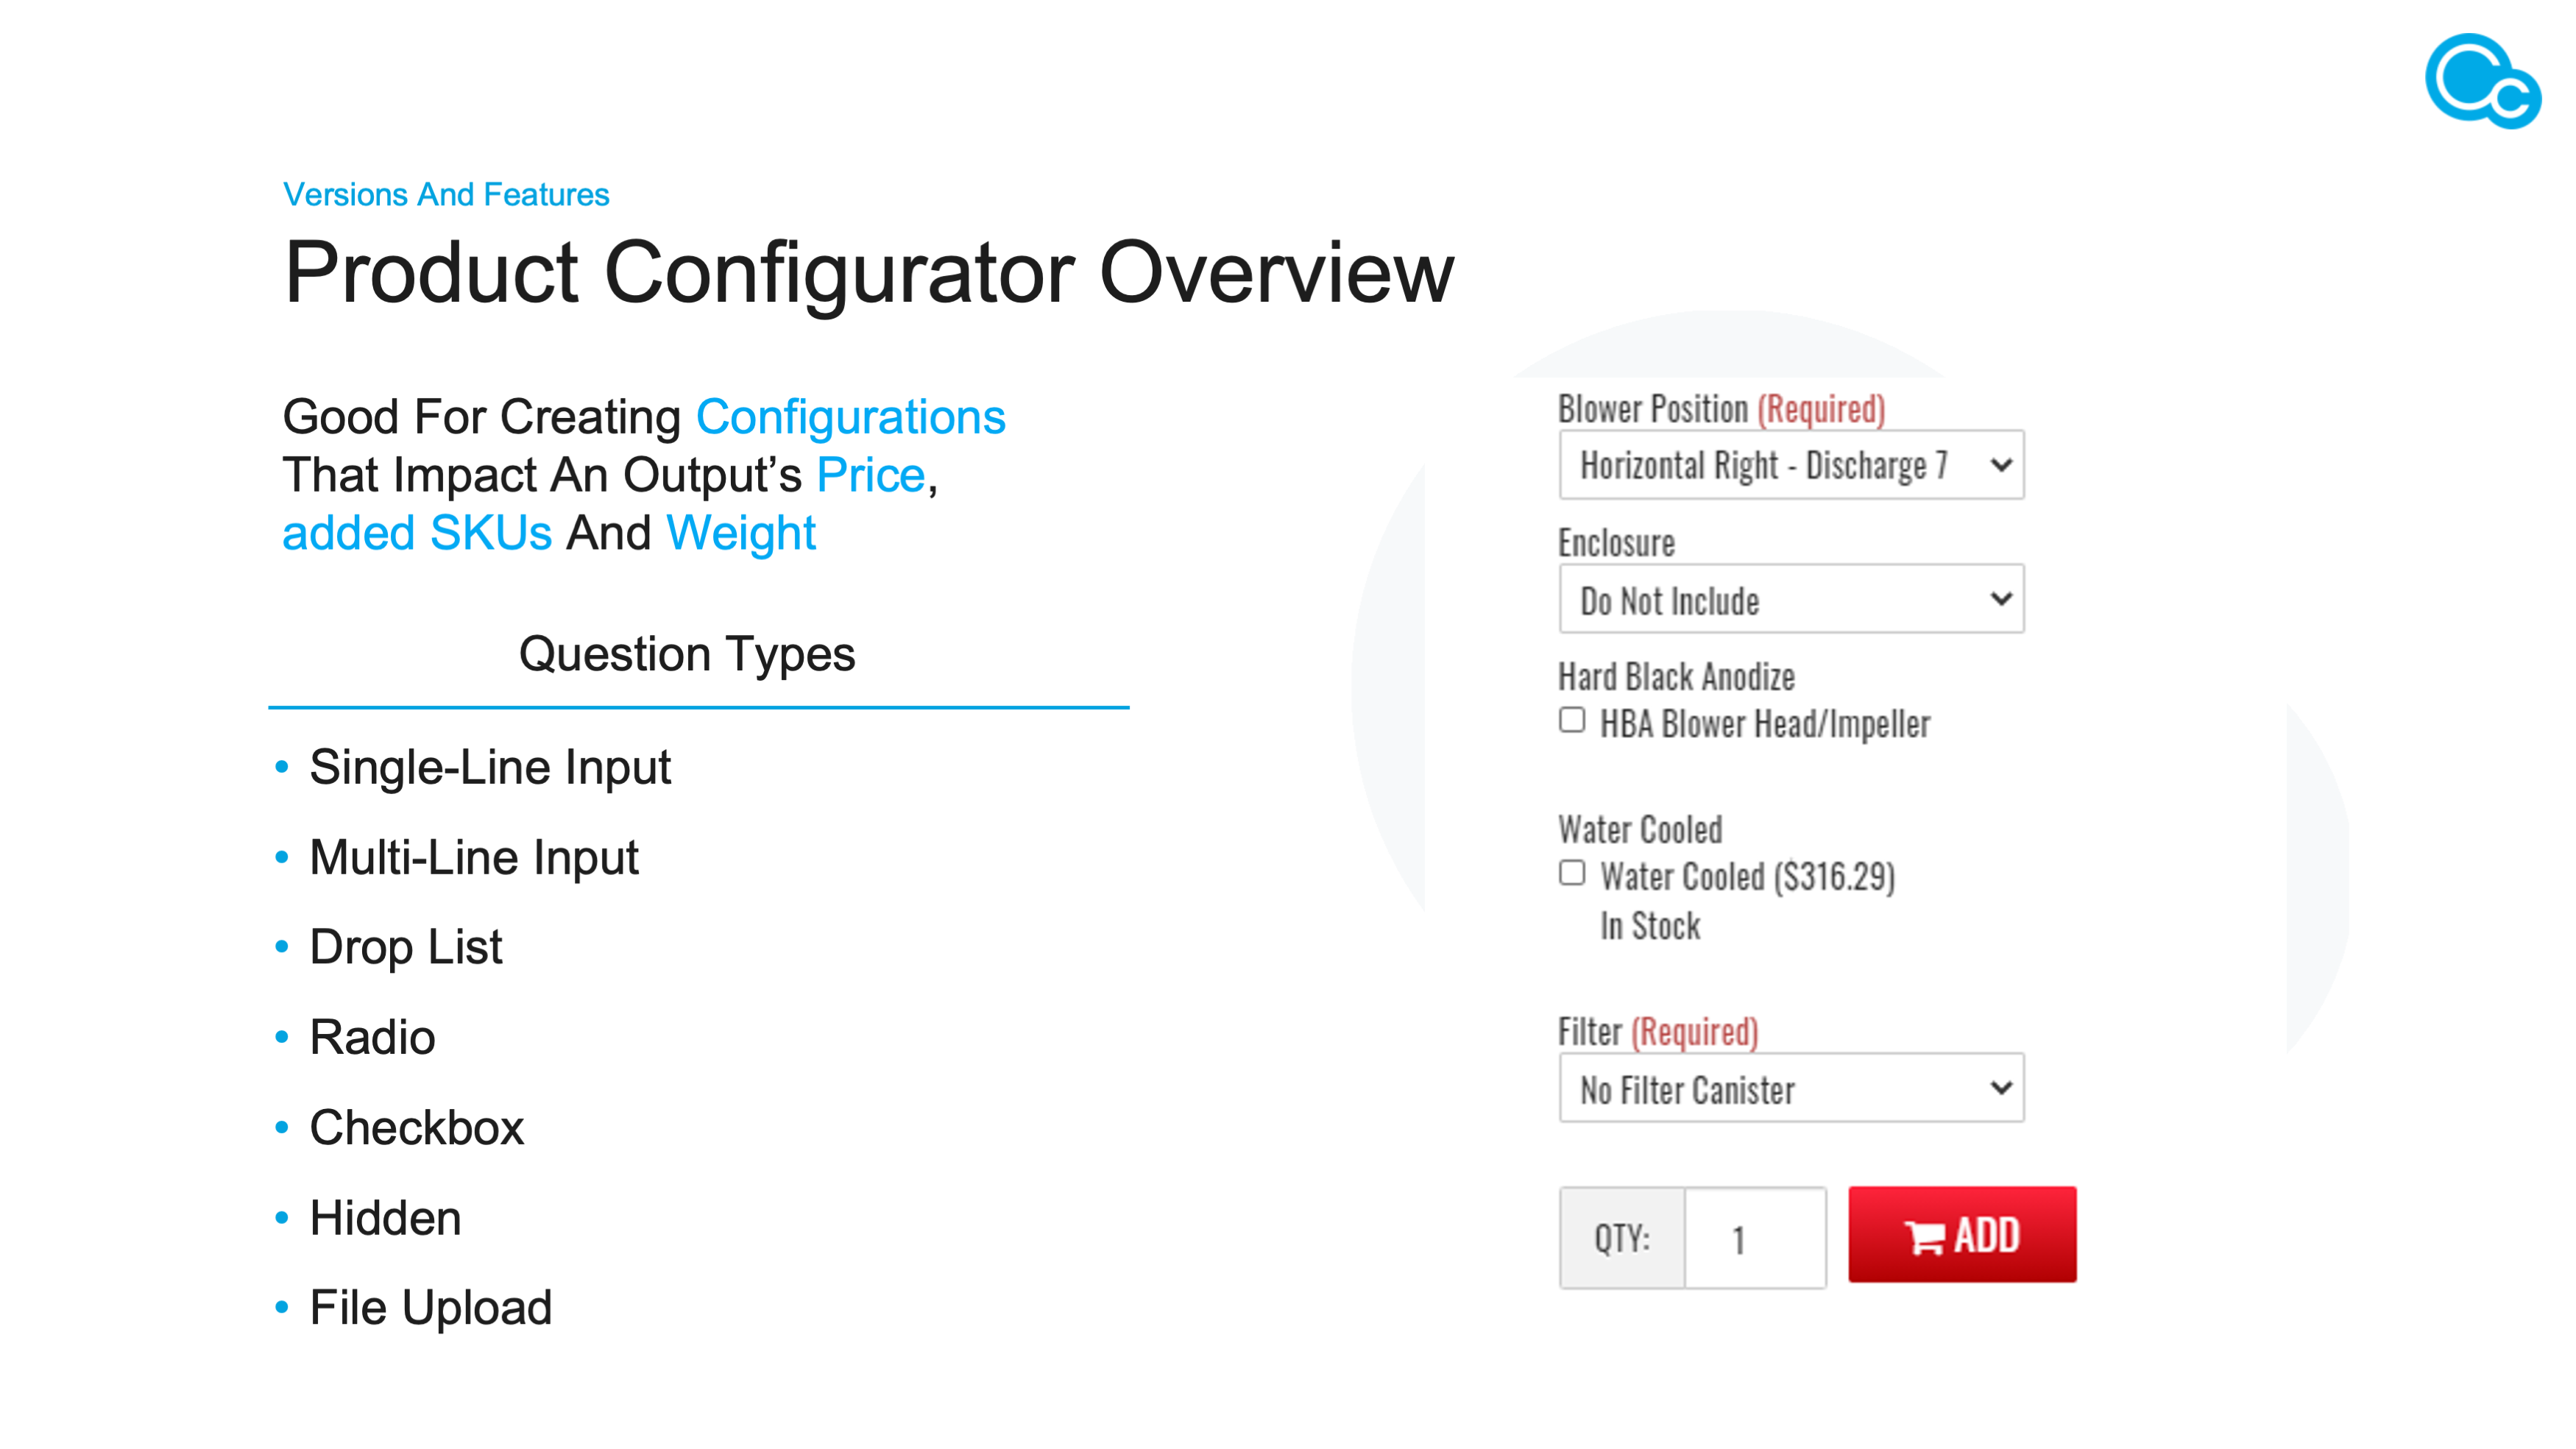 Managing Product Variability with Product Configurator Image